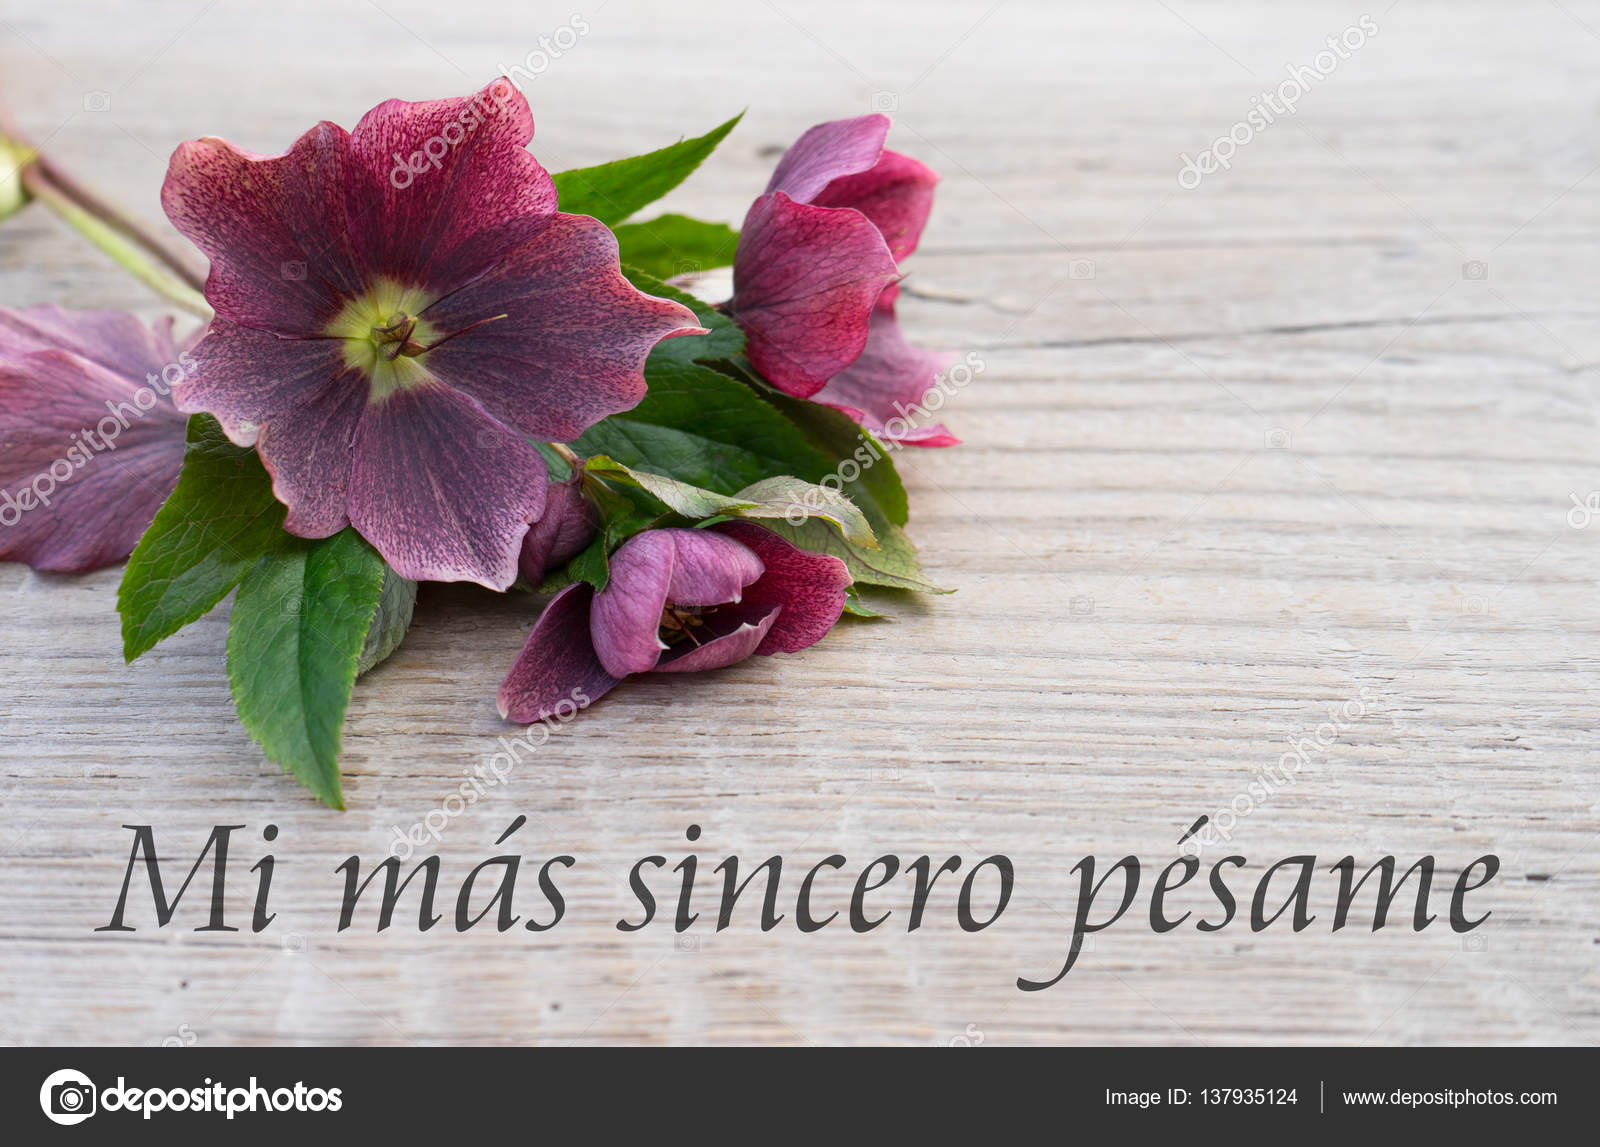 74 best pesame images on pinterest spanish quotes miss you mom